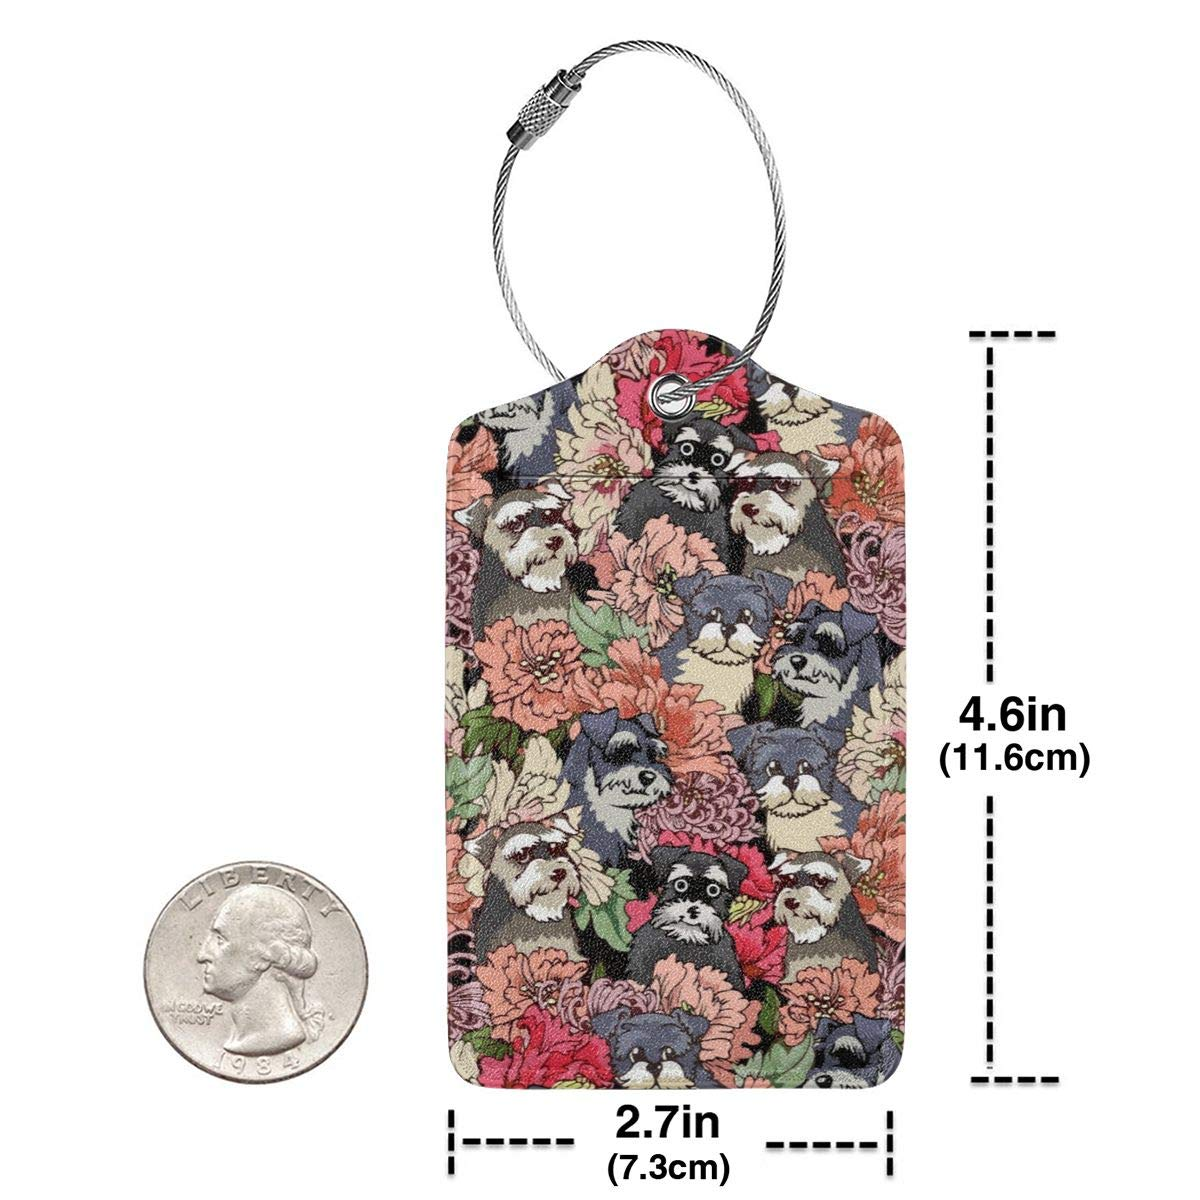 Schnauzer Dog Florals Luggage Tag Label Travel Bag Label With Privacy Cover Luggage Tag Leather Personalized Suitcase Tag Travel Accessories